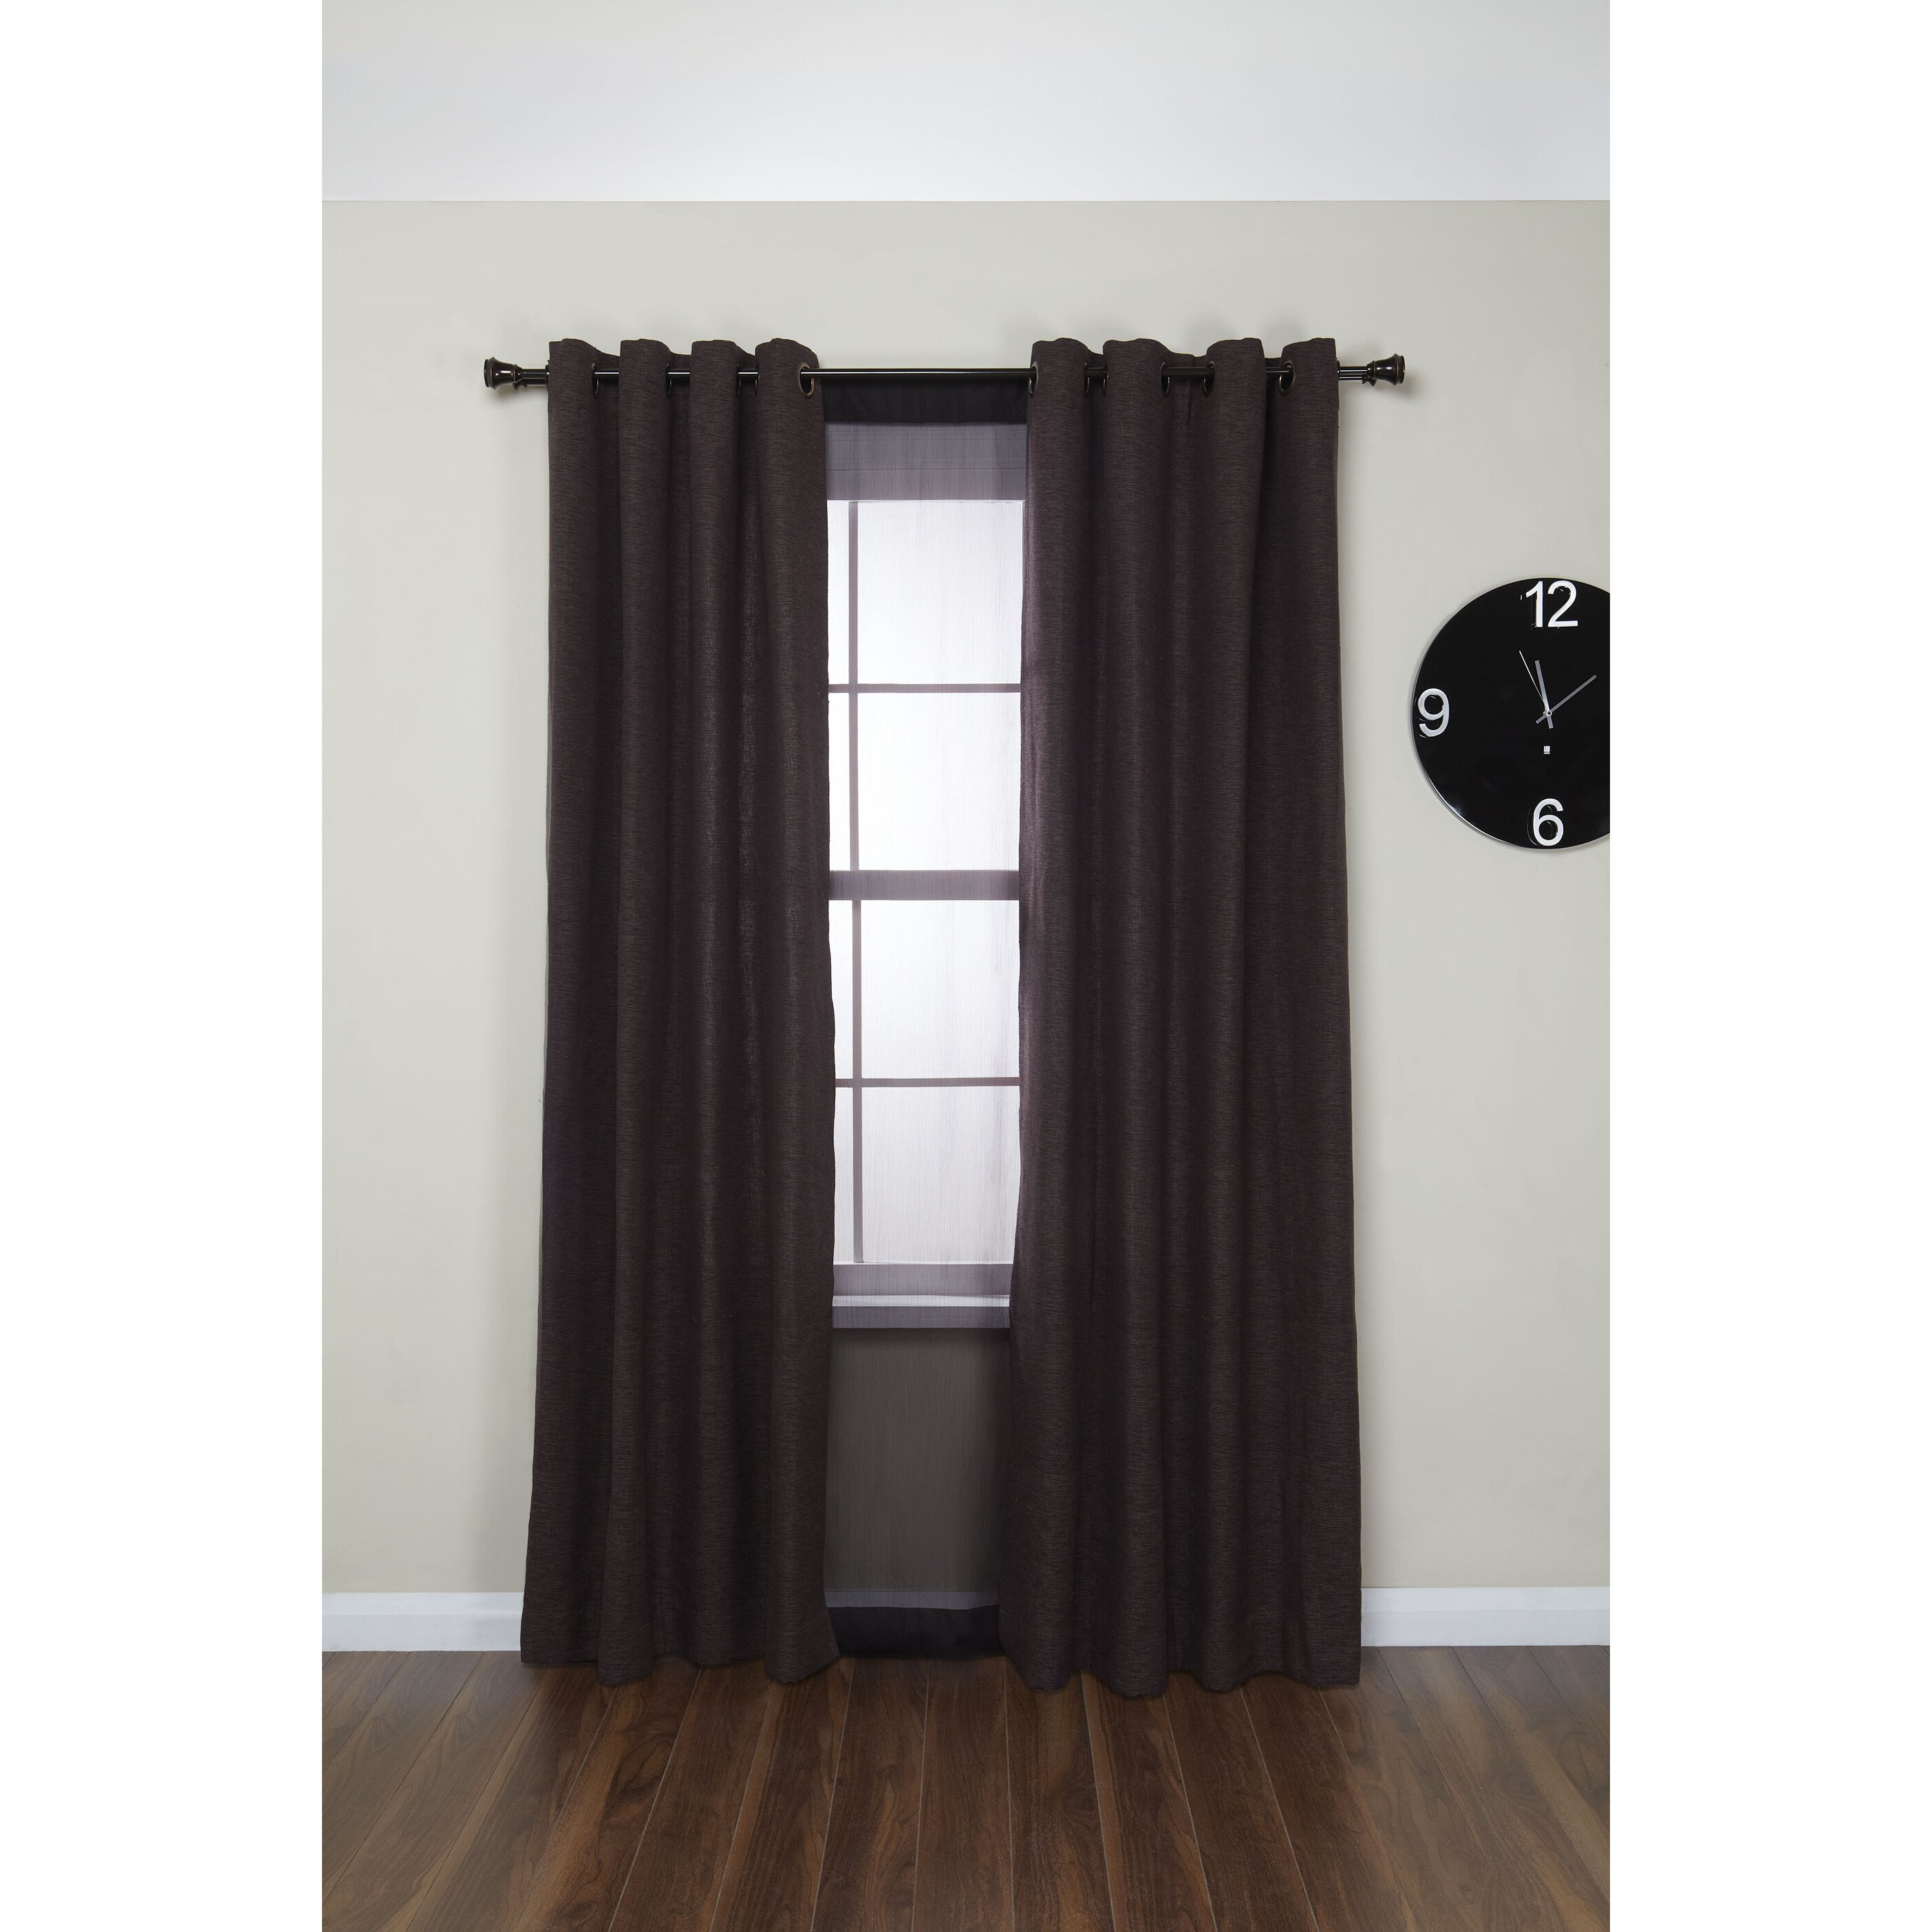 Bellair Double Curtain Rod And Hardware Set & Reviews